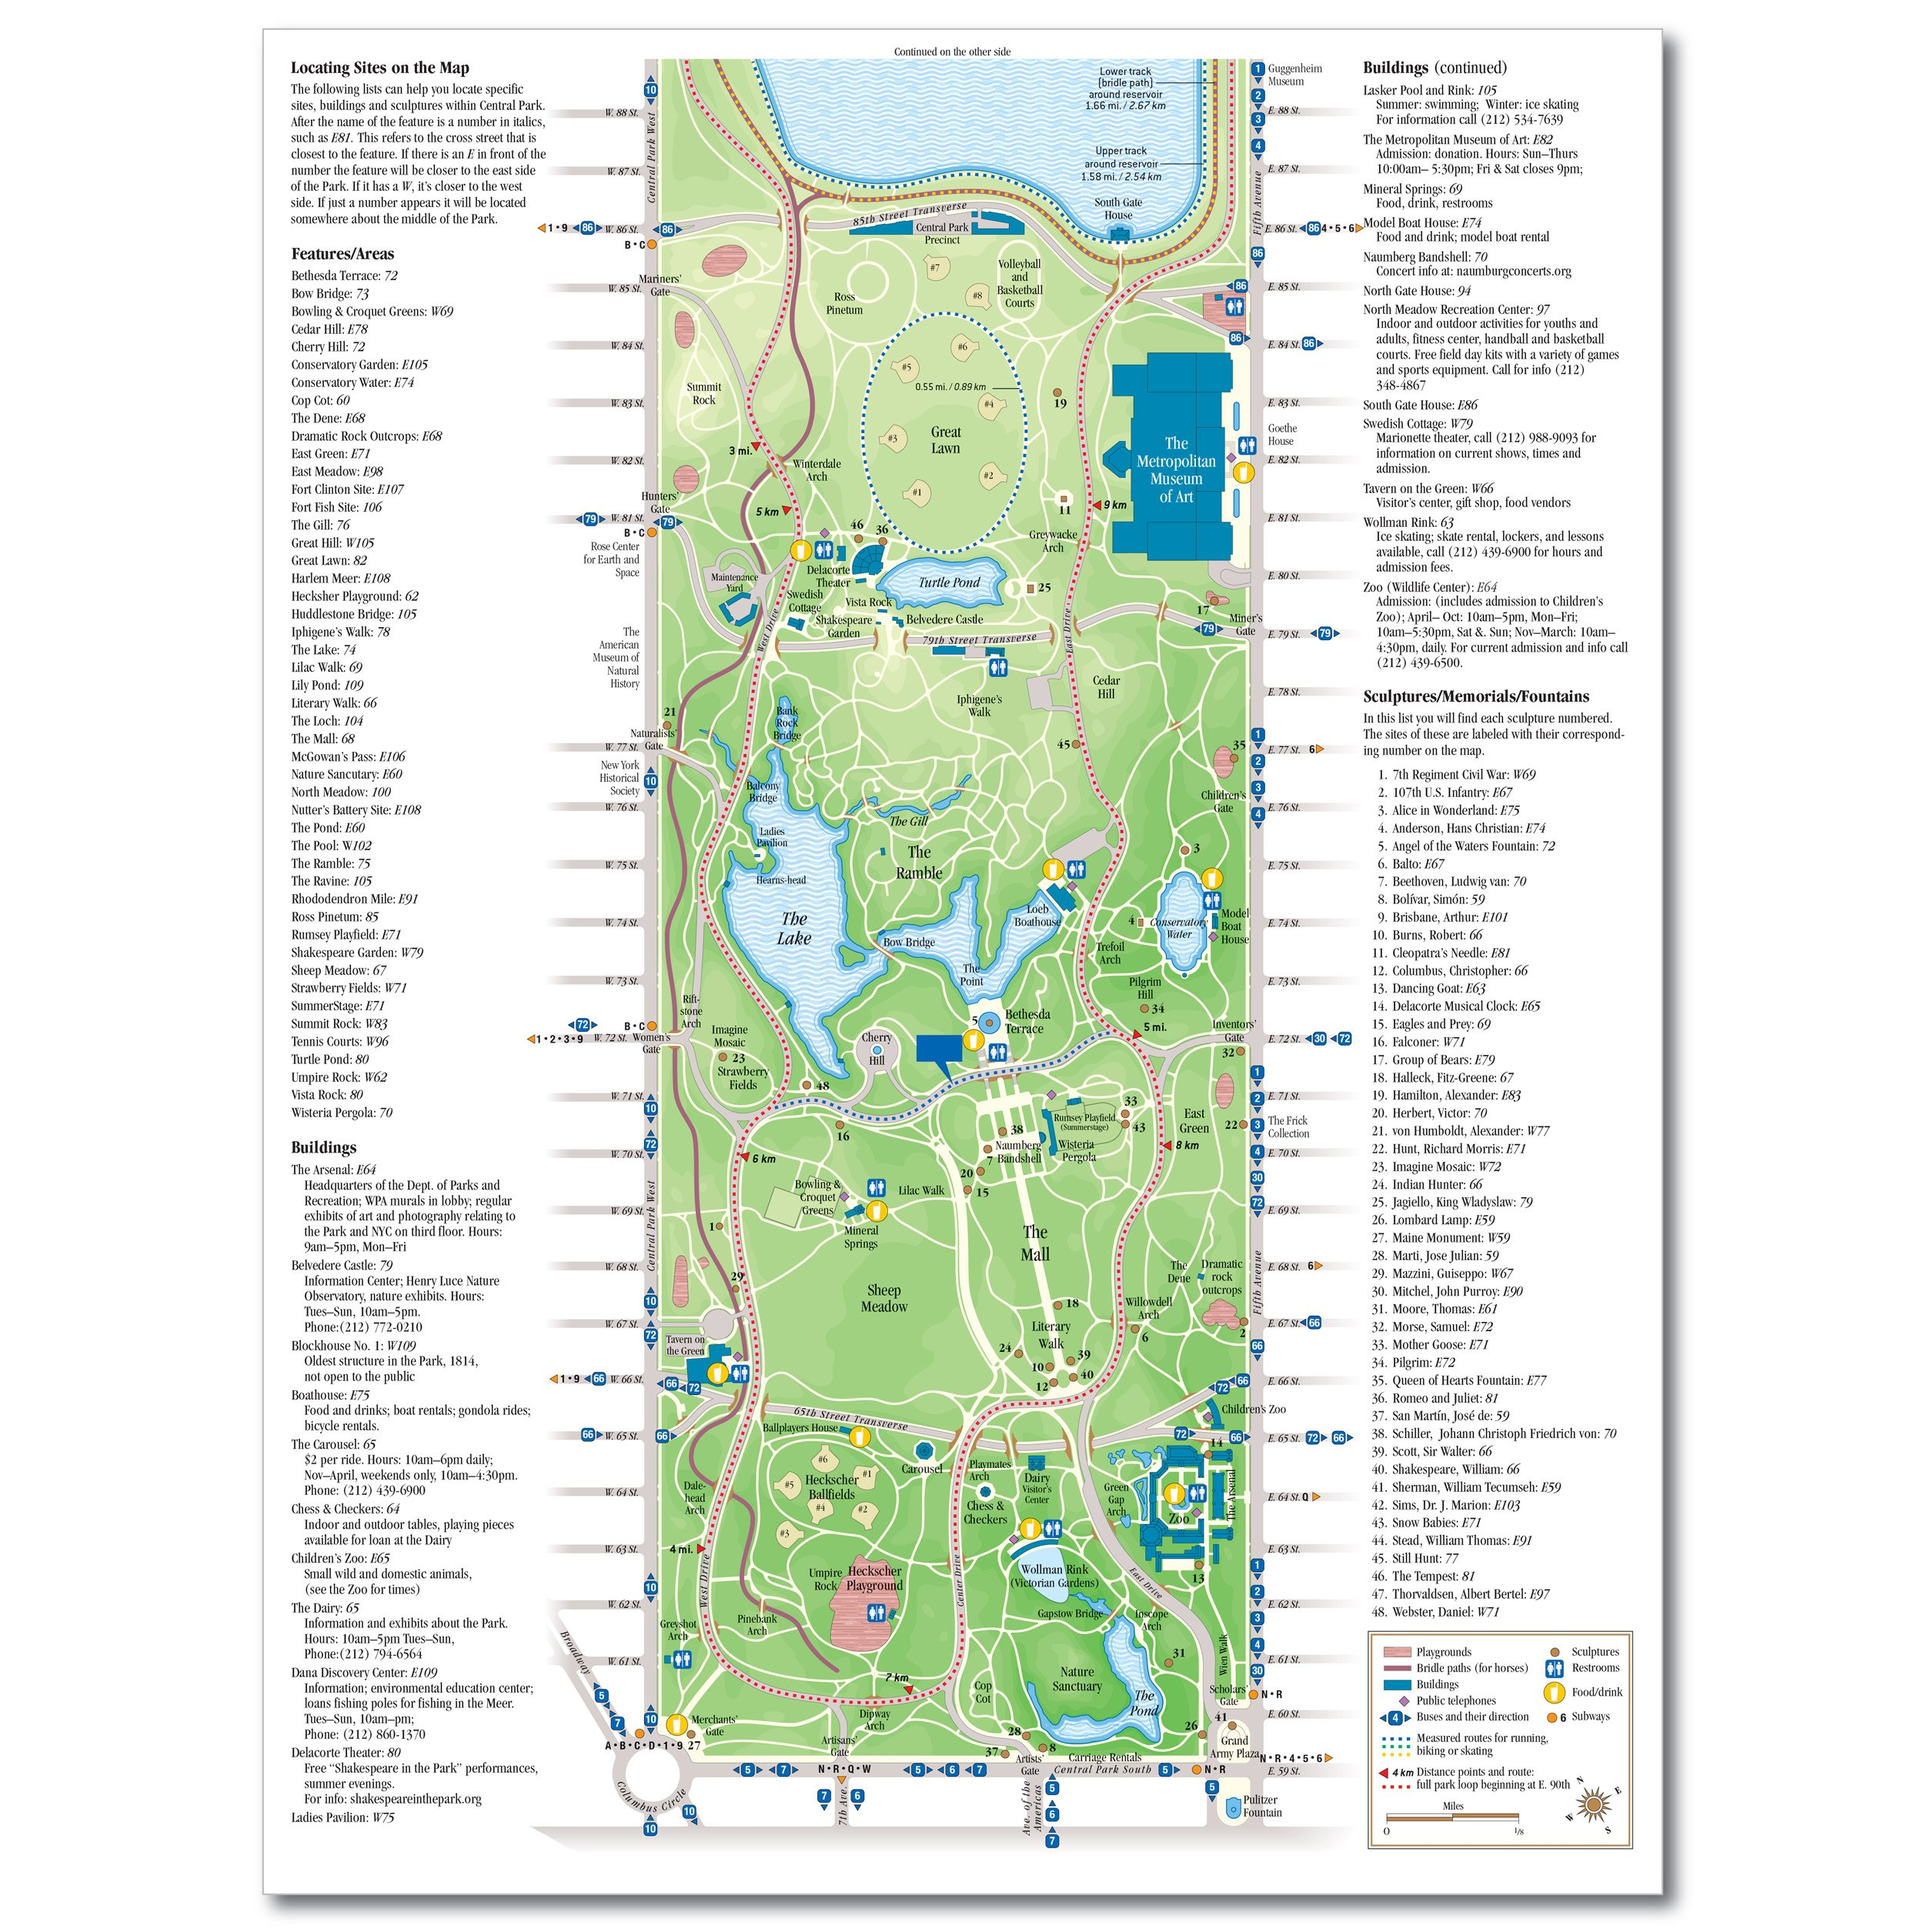 Map and Guide to Central Park, New York City, folding, pocket-sized Central Park Map on